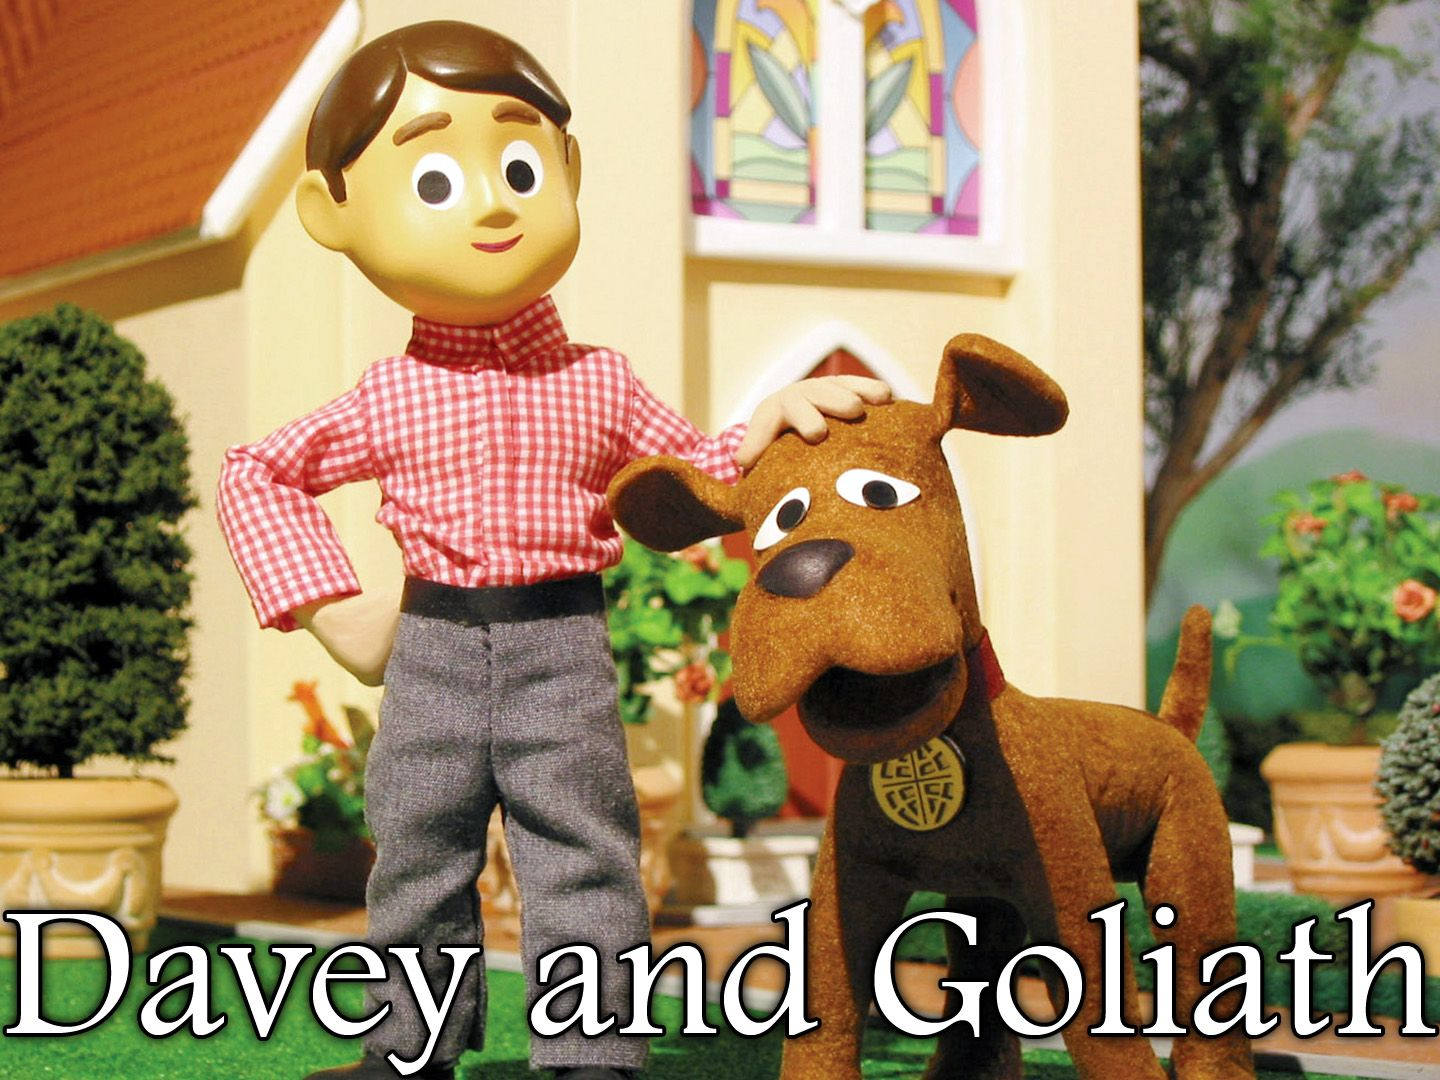 Davy and goliath my brother and i loved this show my